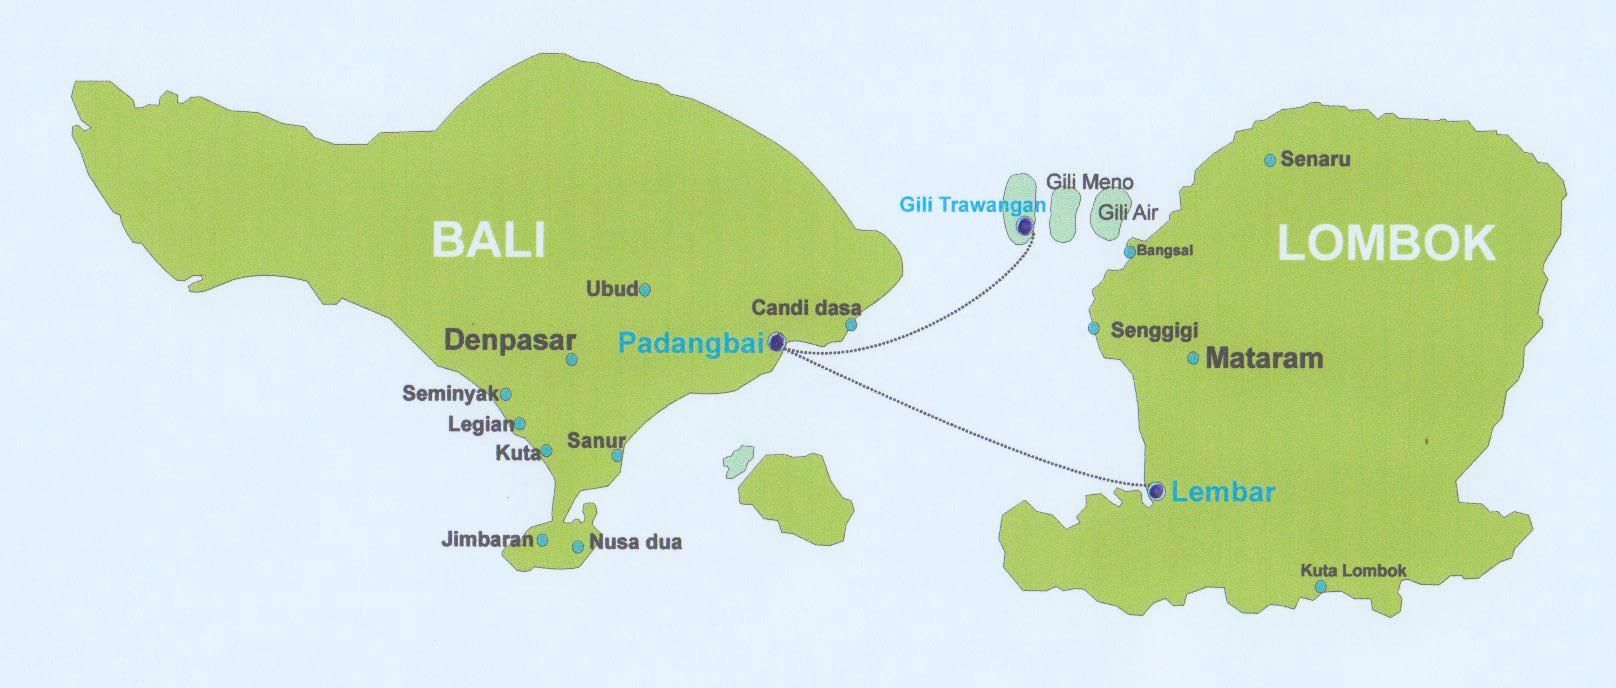 Gili Lombok Map Of Bali Lombok And The 3 Gili Islands Gili Trawangan Gili